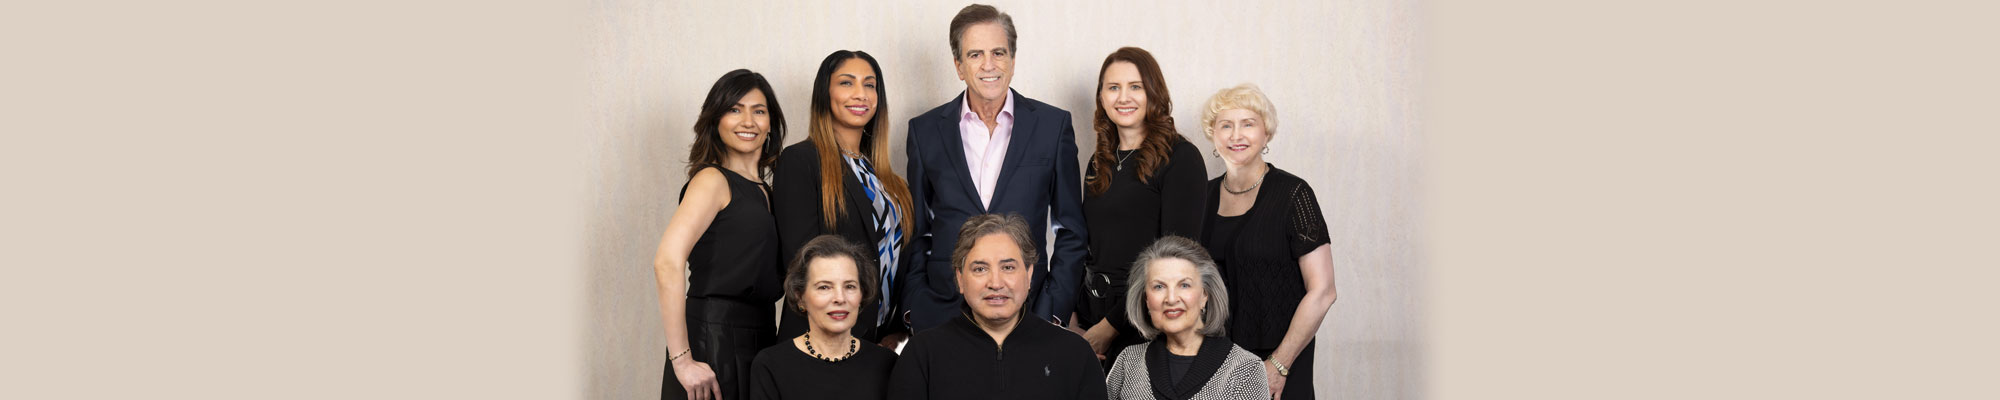 The staff at Prosthetic Dentistry of Washington D.C.